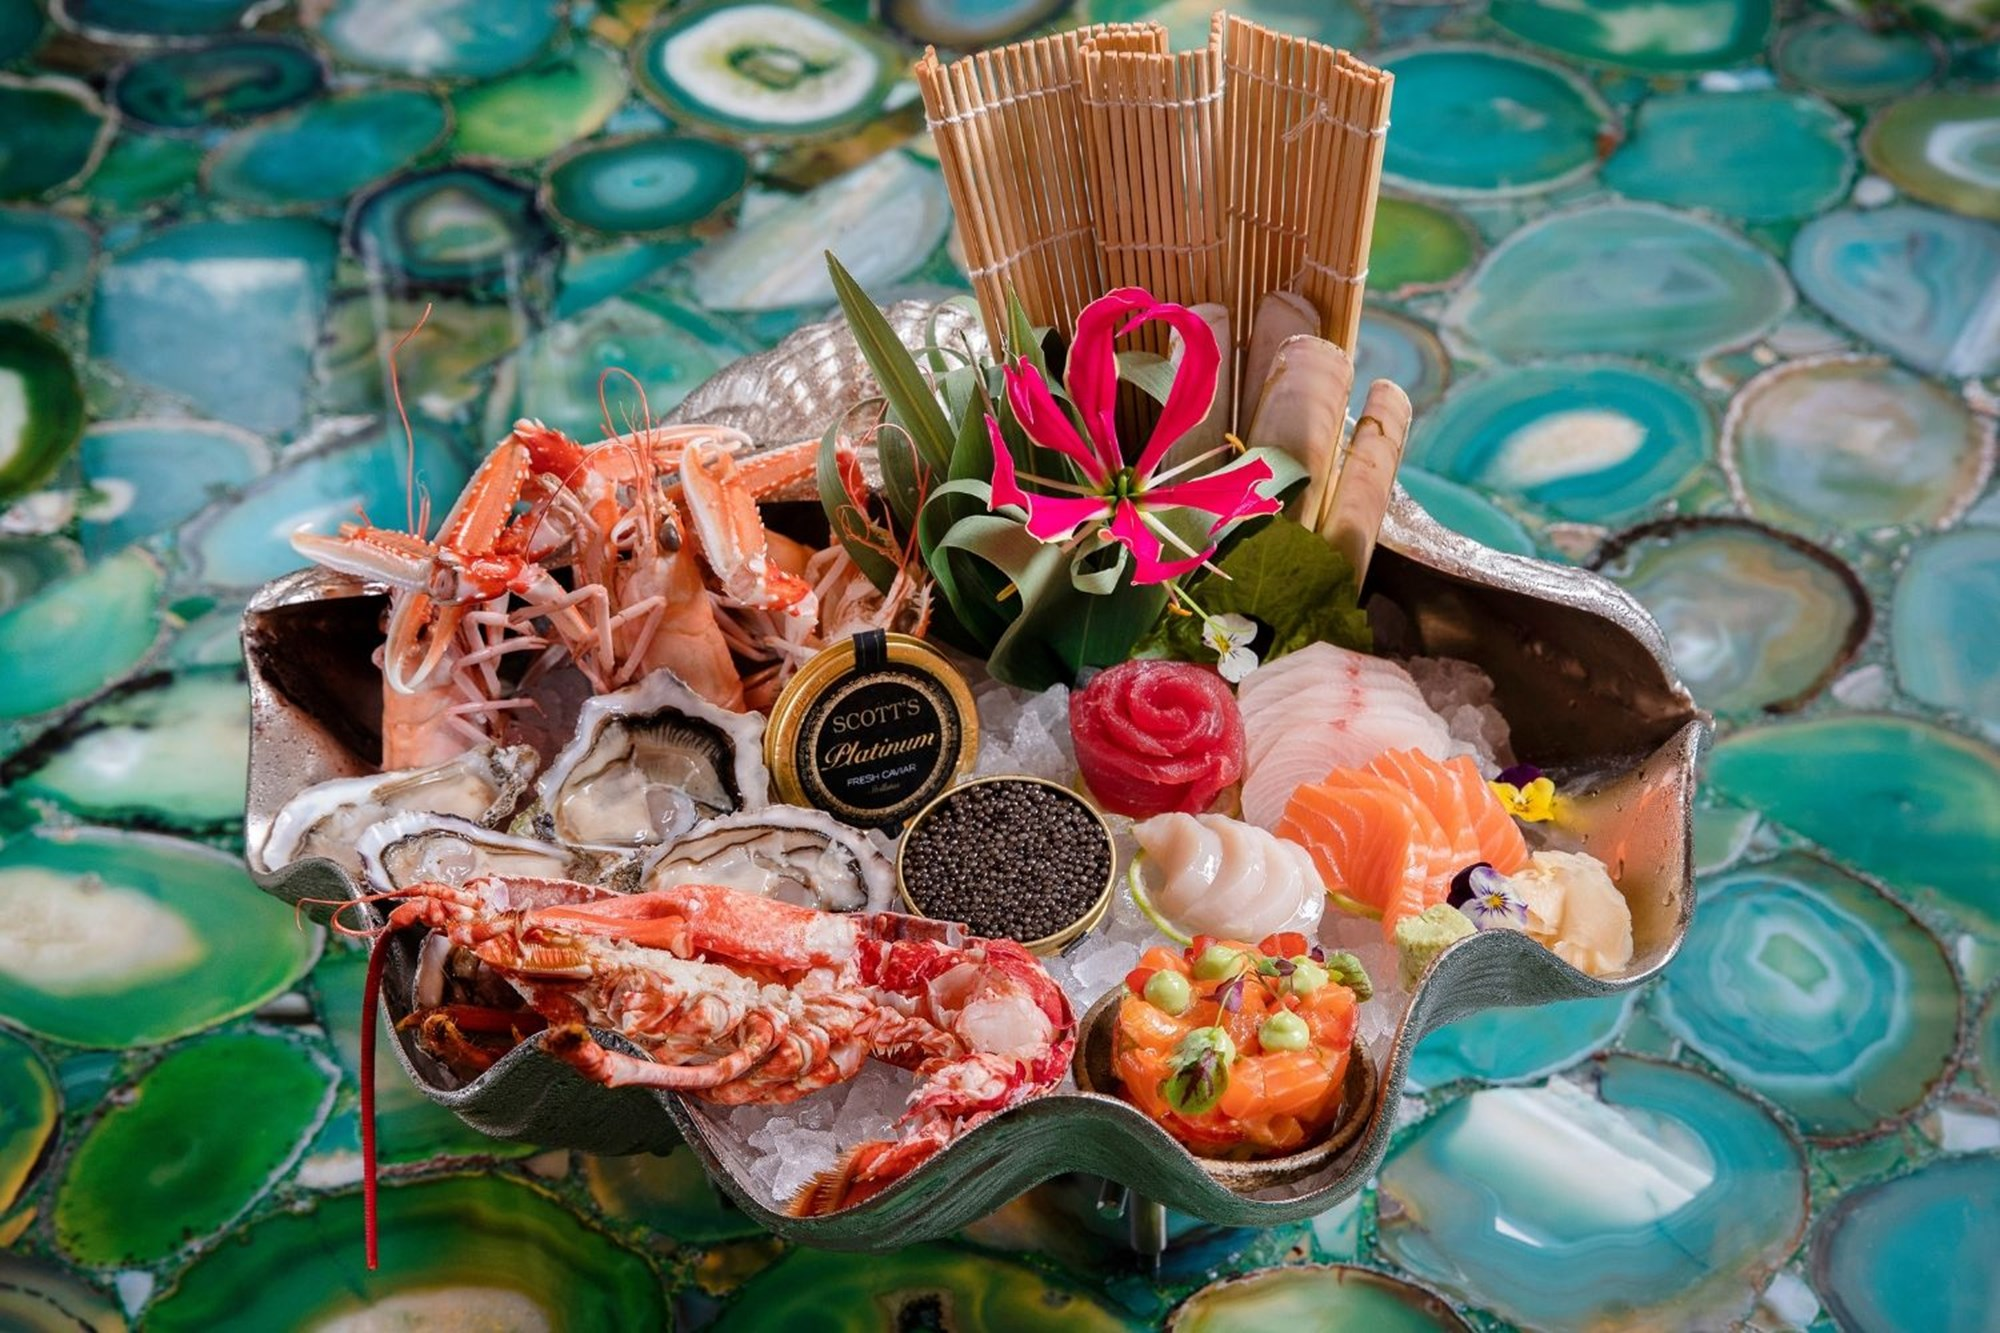 Exclusive seafood platter available for group dining at Scott's, Mayfair